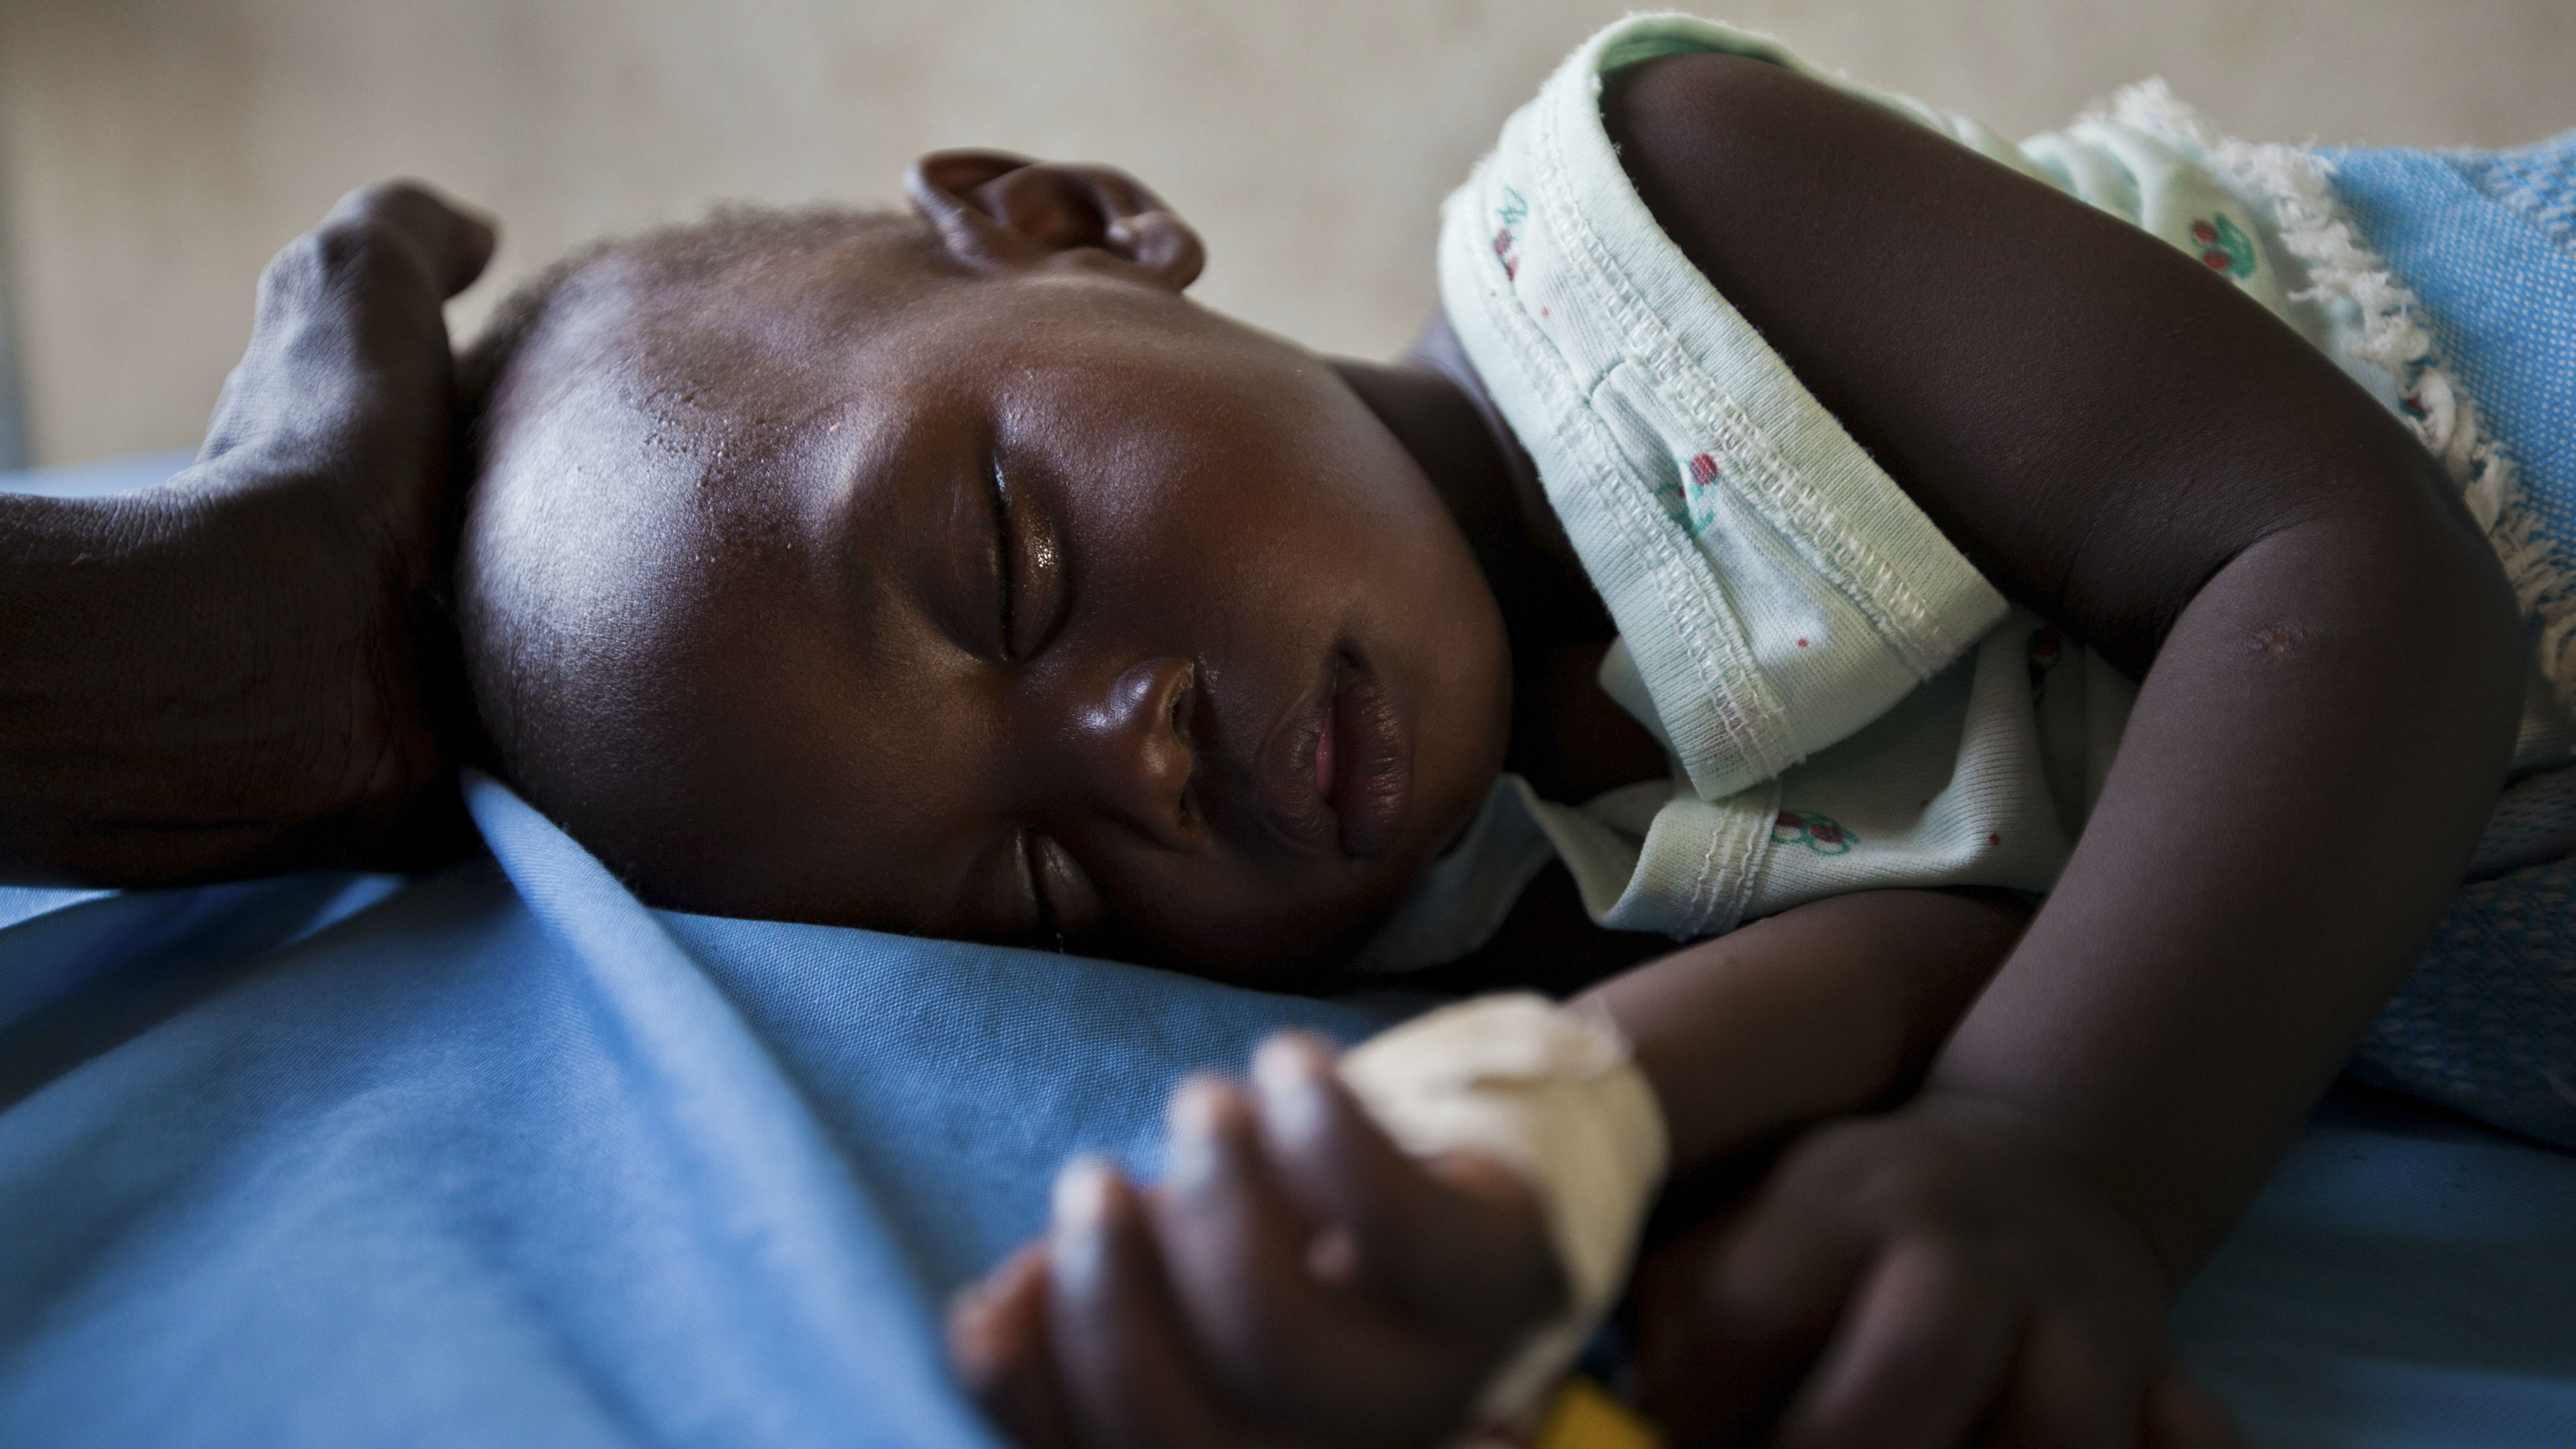 A young girl with malaria rests in the inpatient ward of the Malualkon Primary Health Care Center in Malualkon, in the South Sudanese state of Northern Bahr el Ghazal, June 1, 2012. As in many developing nations, international aid is both an invaluable help to South Sudan and a crutch that sometimes enables it to avoid reality. Development experts have grown more sophisticated in recent decades about how they deliver aid. But in fragile states such as South Sudan, getting the balance right between helping a country and helping that country help itself remains incredibly difficult. Picture taken June 1, 2012. To match Special Report SOUTH-SUDAN/AID REUTERS/Adriane Ohanesian (SOUTH SUDAN - Tags: ANNIVERSARY HEALTH SOCIETY TPX IMAGES OF THE DAY)